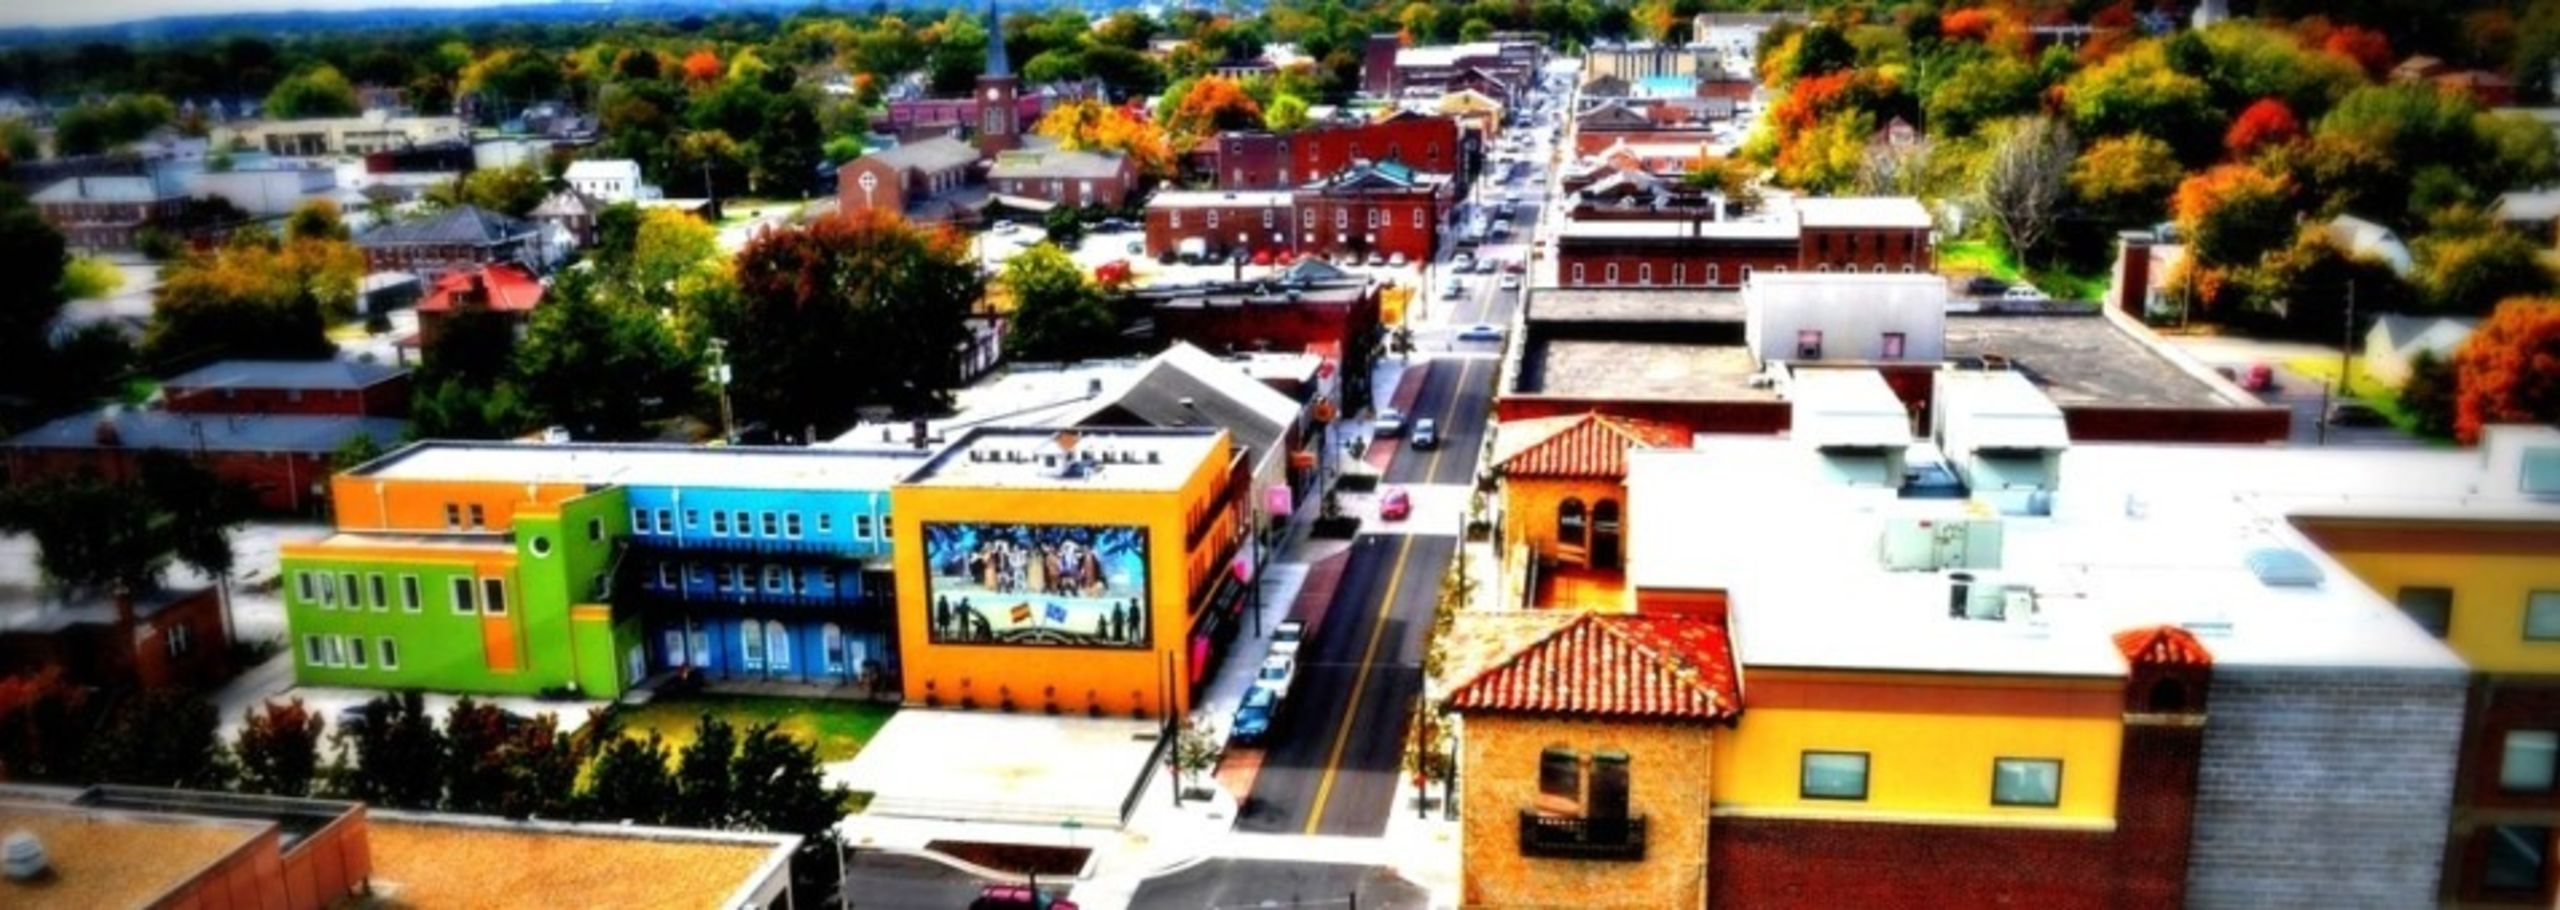 Cape Girardeau - Broadway (photo credit:cityofcapegirardeau .org)